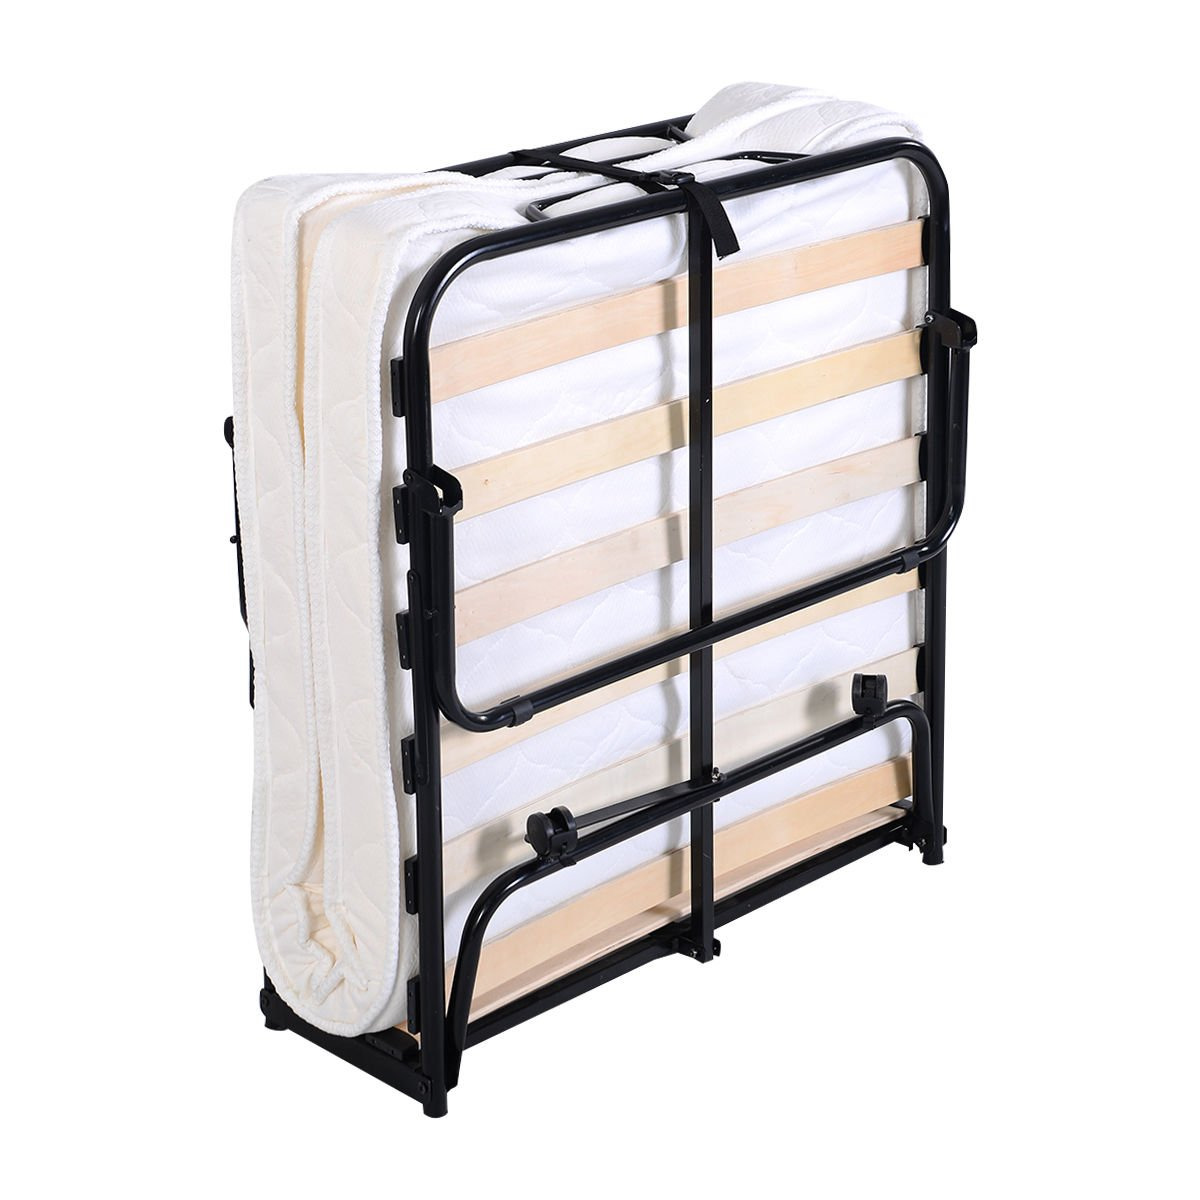 GHP 440Lbs Capacity Steel Frame Wood Slat Folding Foam Mattress Bed with Casters by Globe House Products (Image #3)